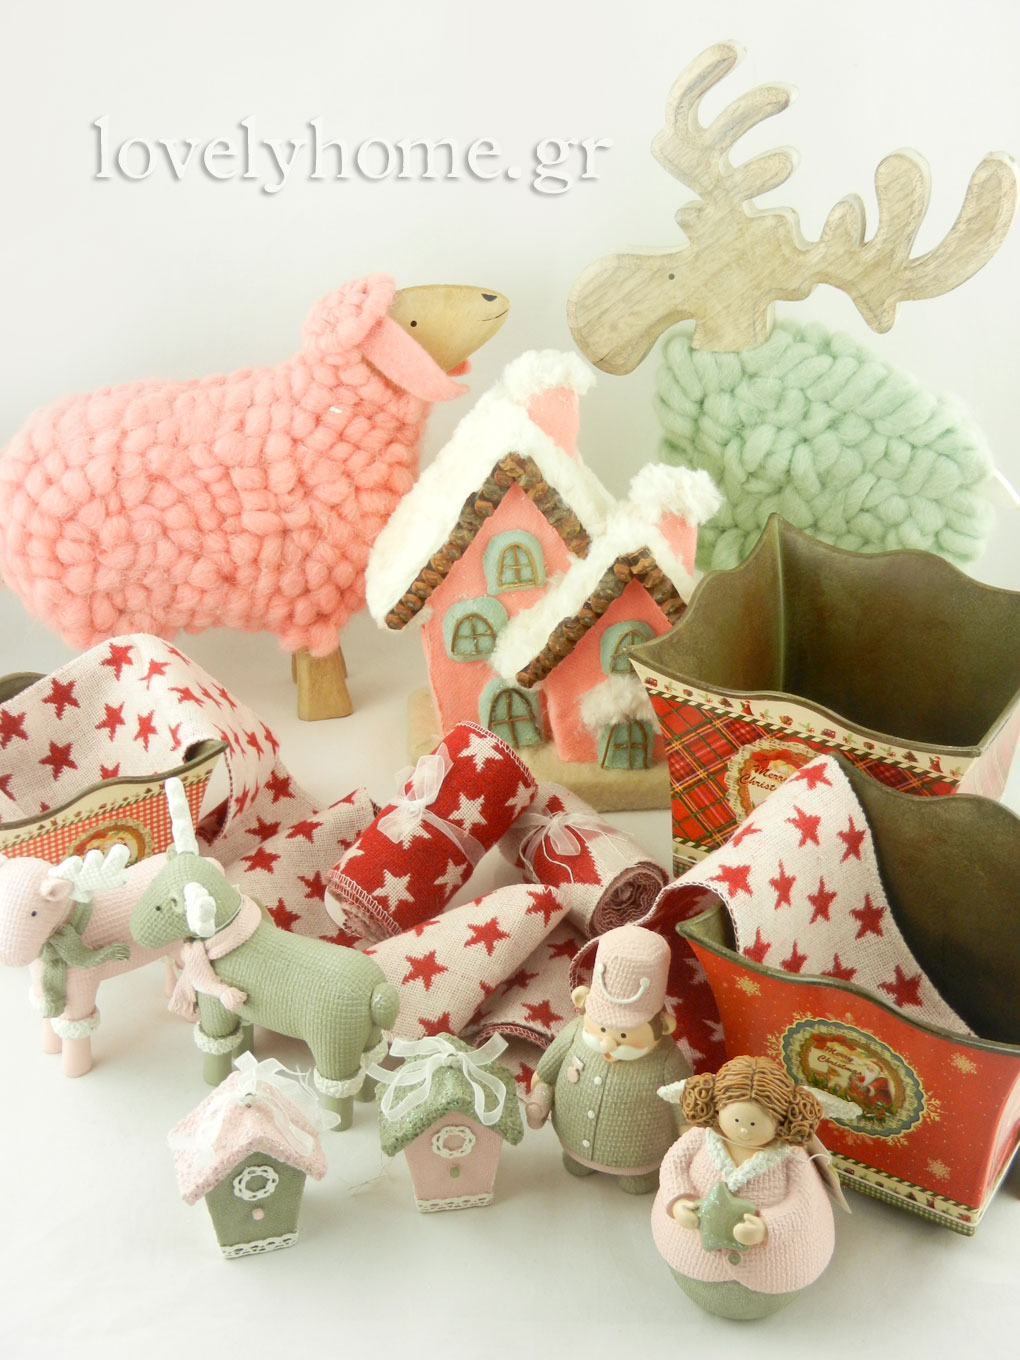 pastel colors for cristmas decor ang gifts